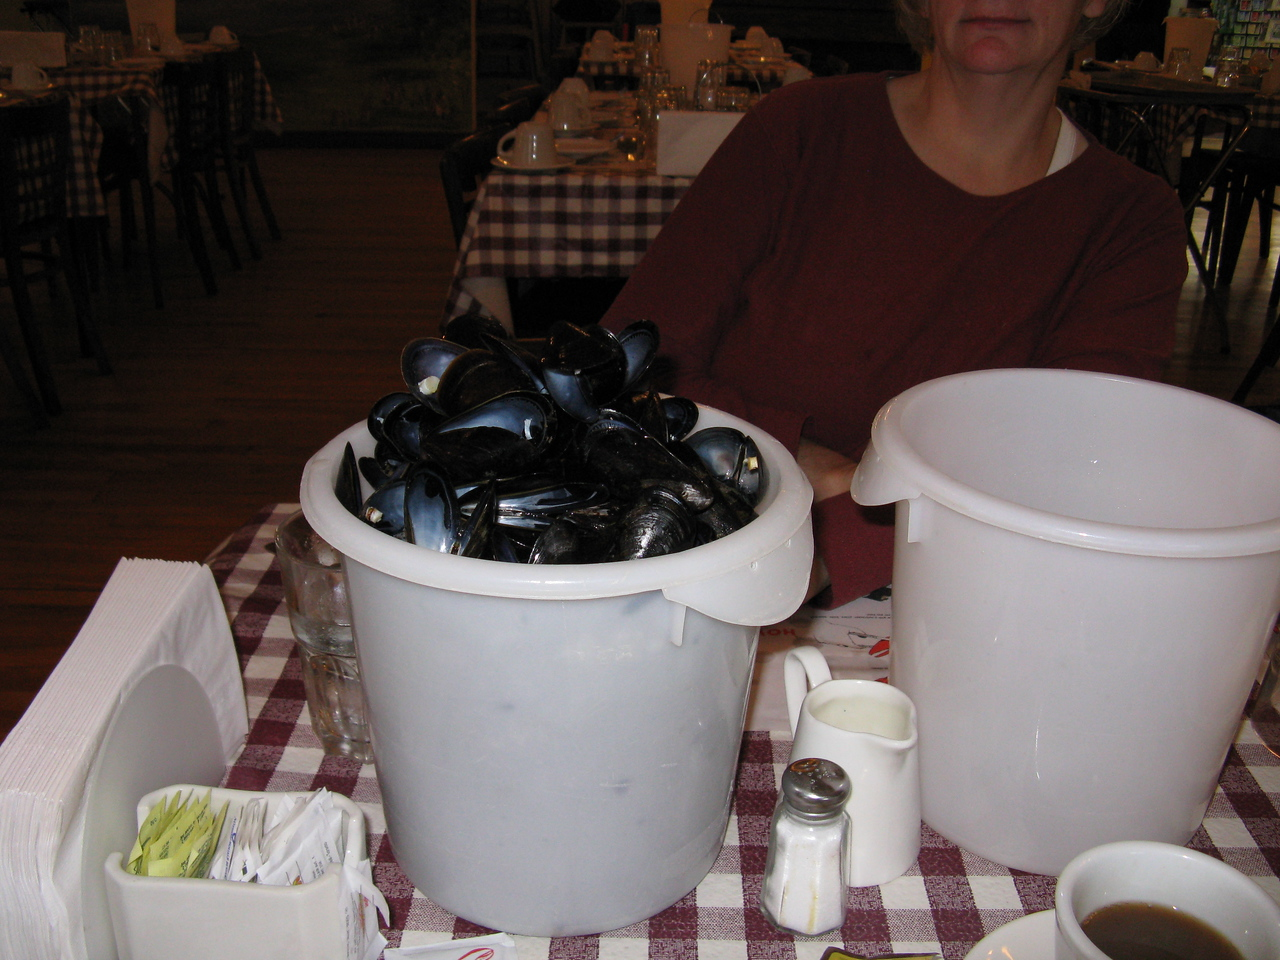 The New Glasgow lobster super - mussels, or at least their shells after we polished off a bucket.